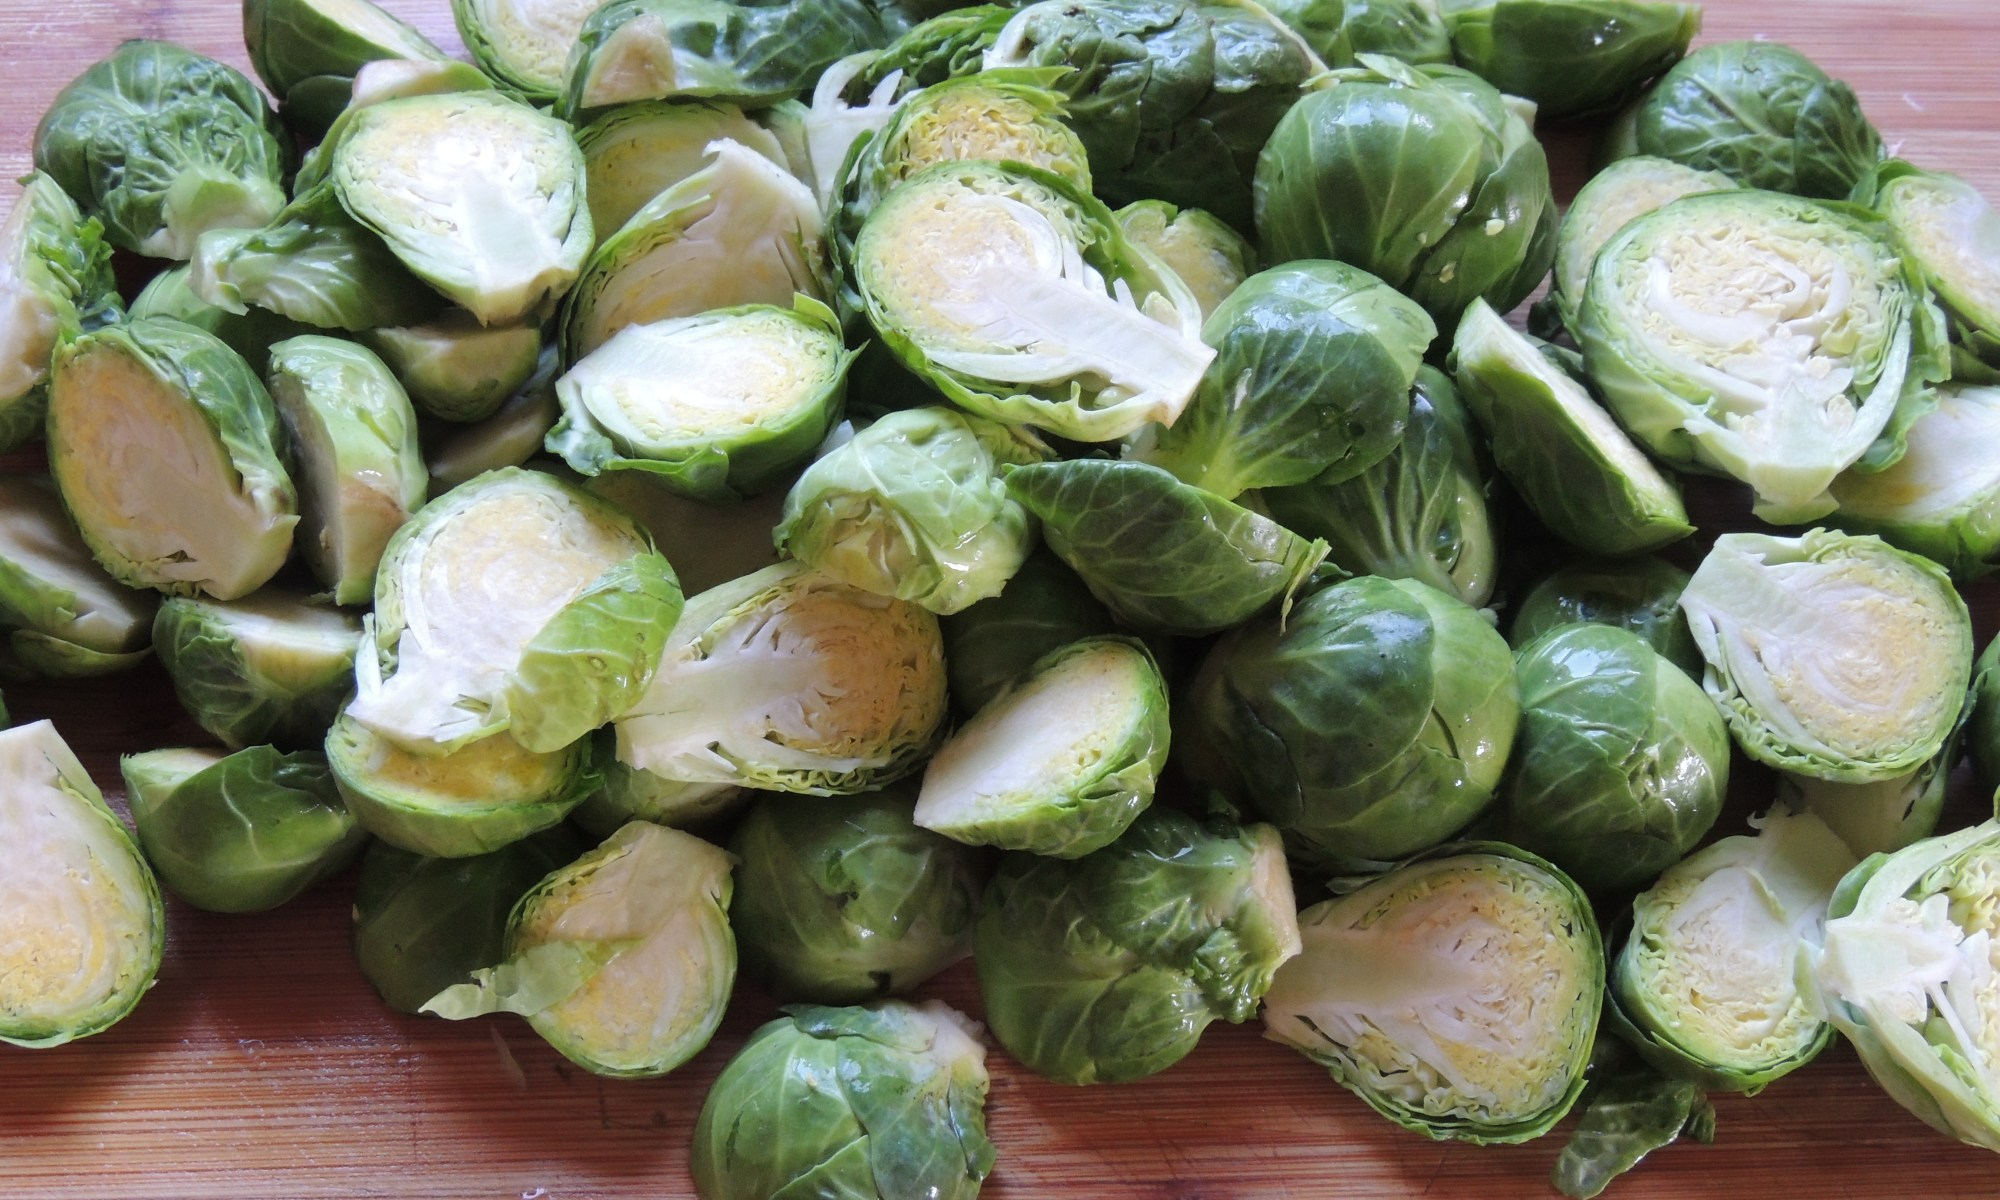 Brussels sprouts slice in half.